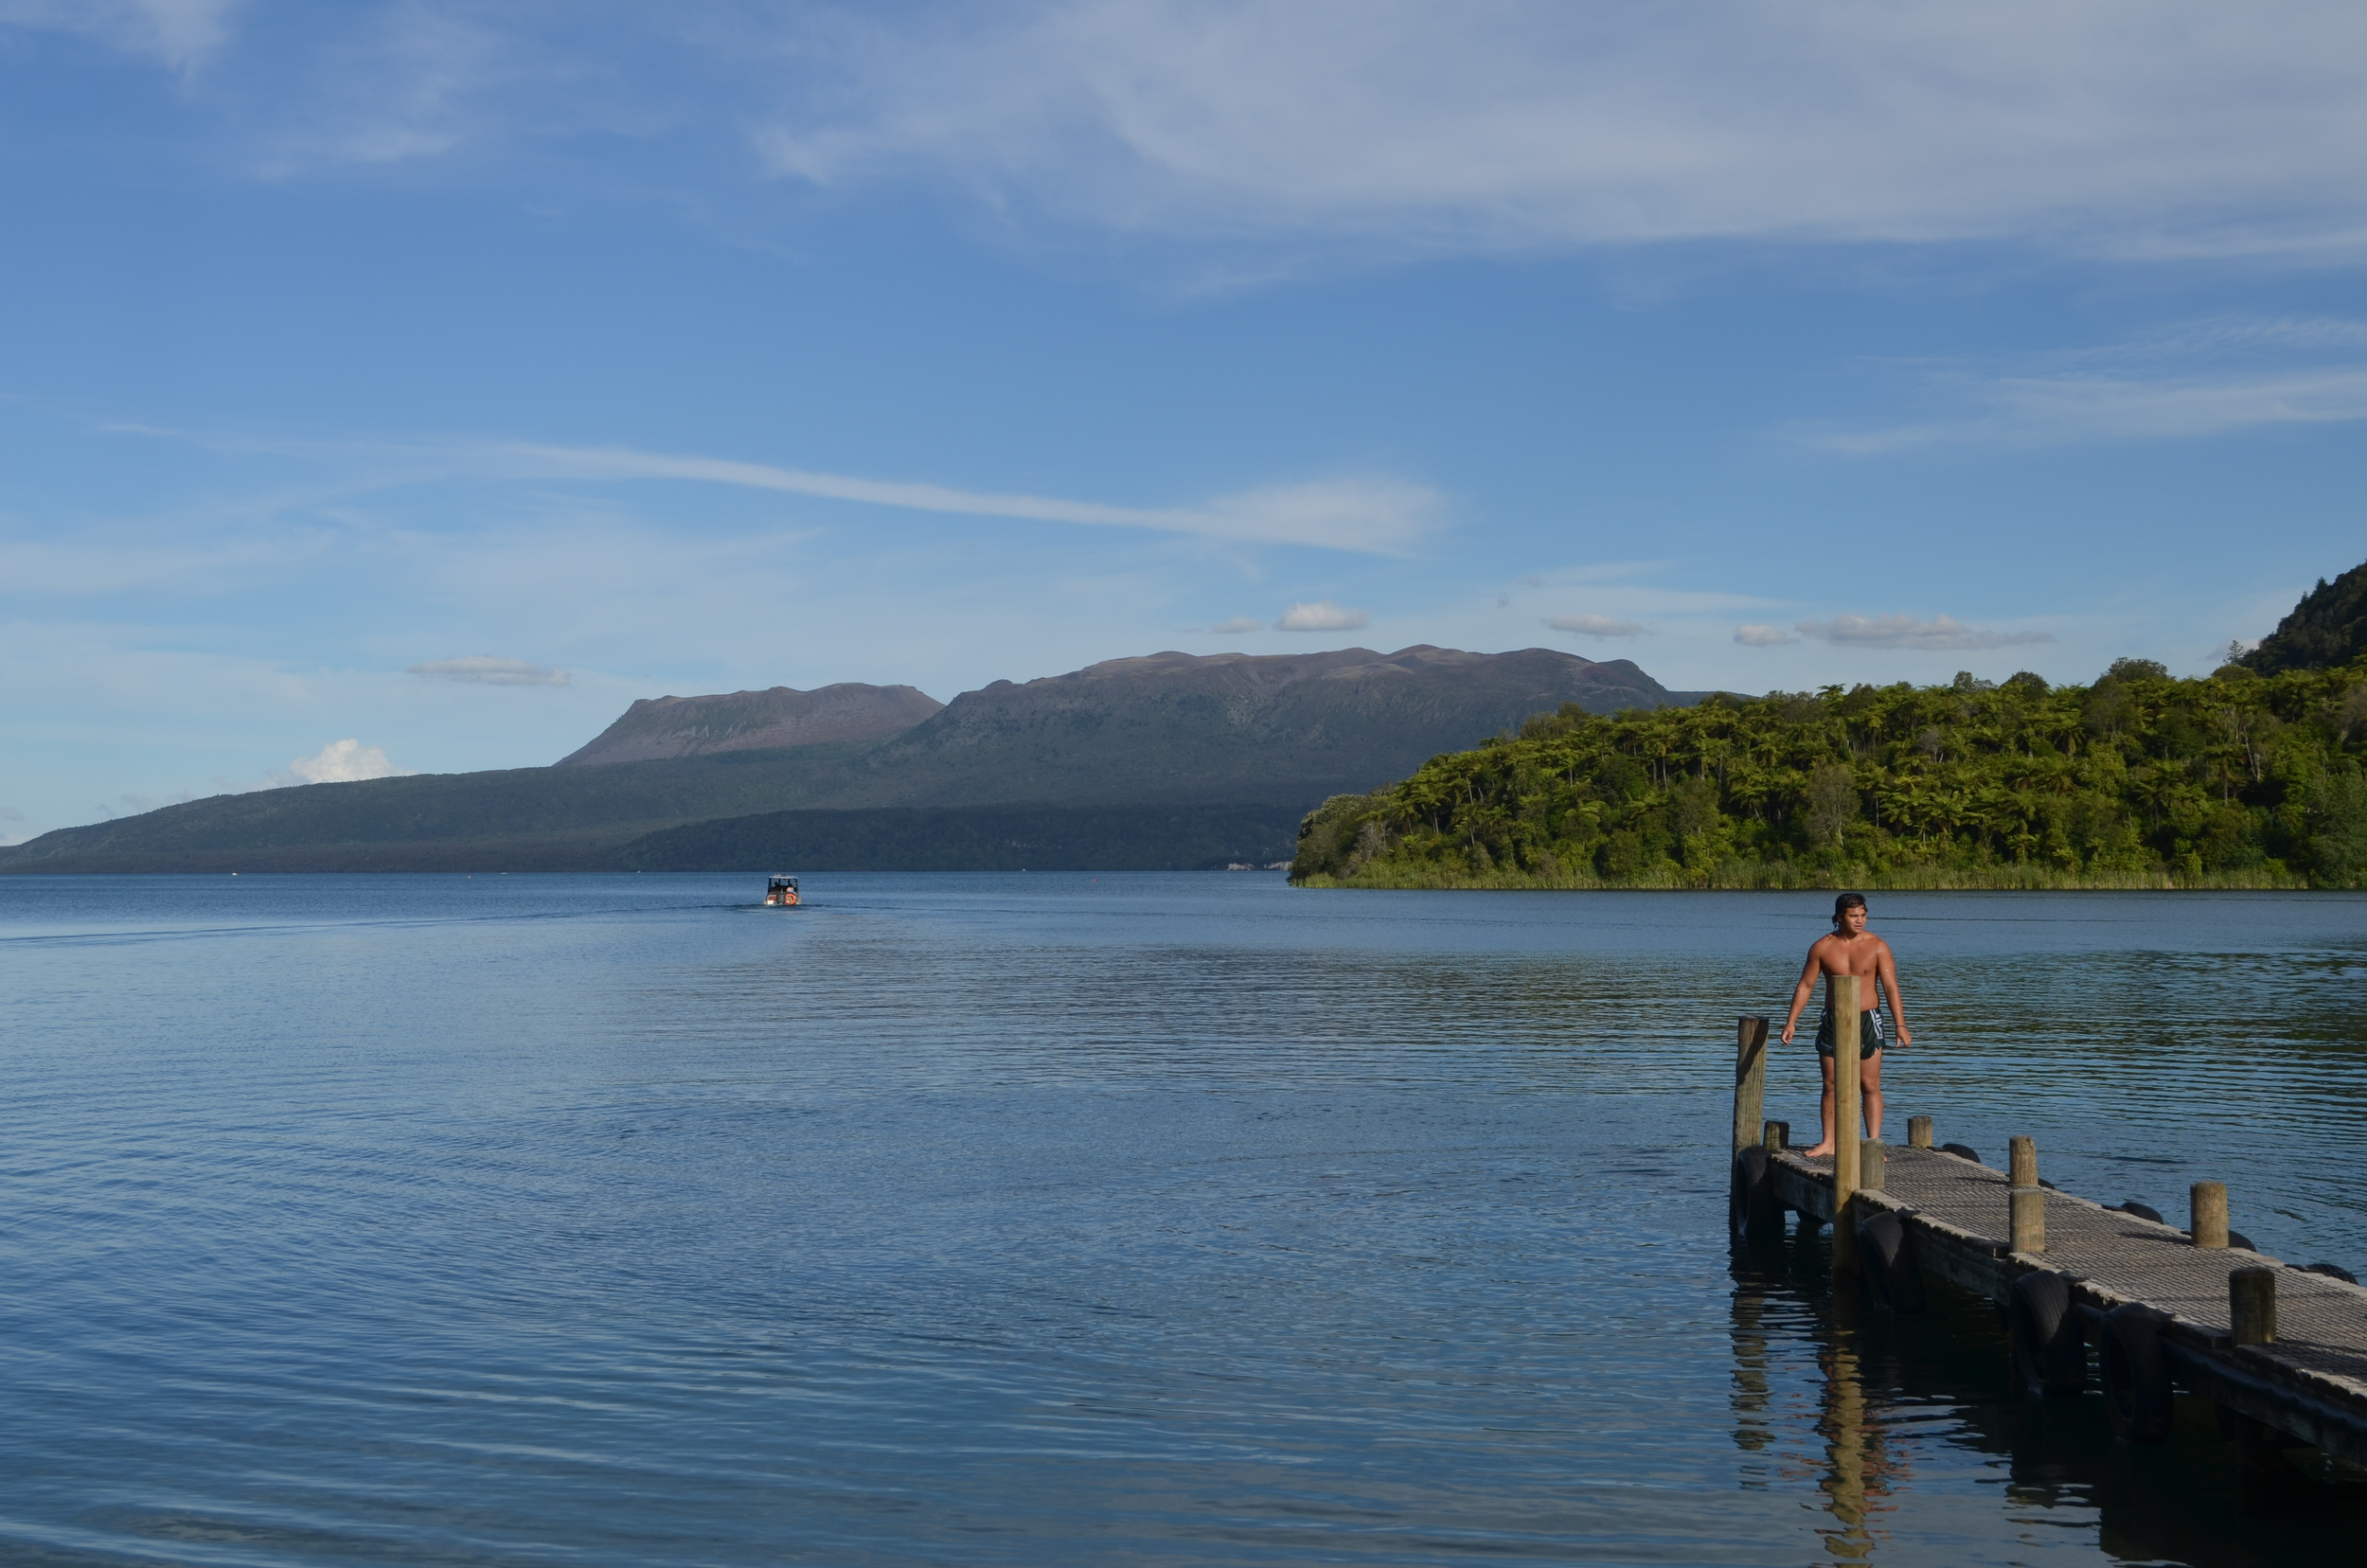 View of Mt. Tarawera, which destroyed the Pink and White Terraces - the Eighth Wonder of the World